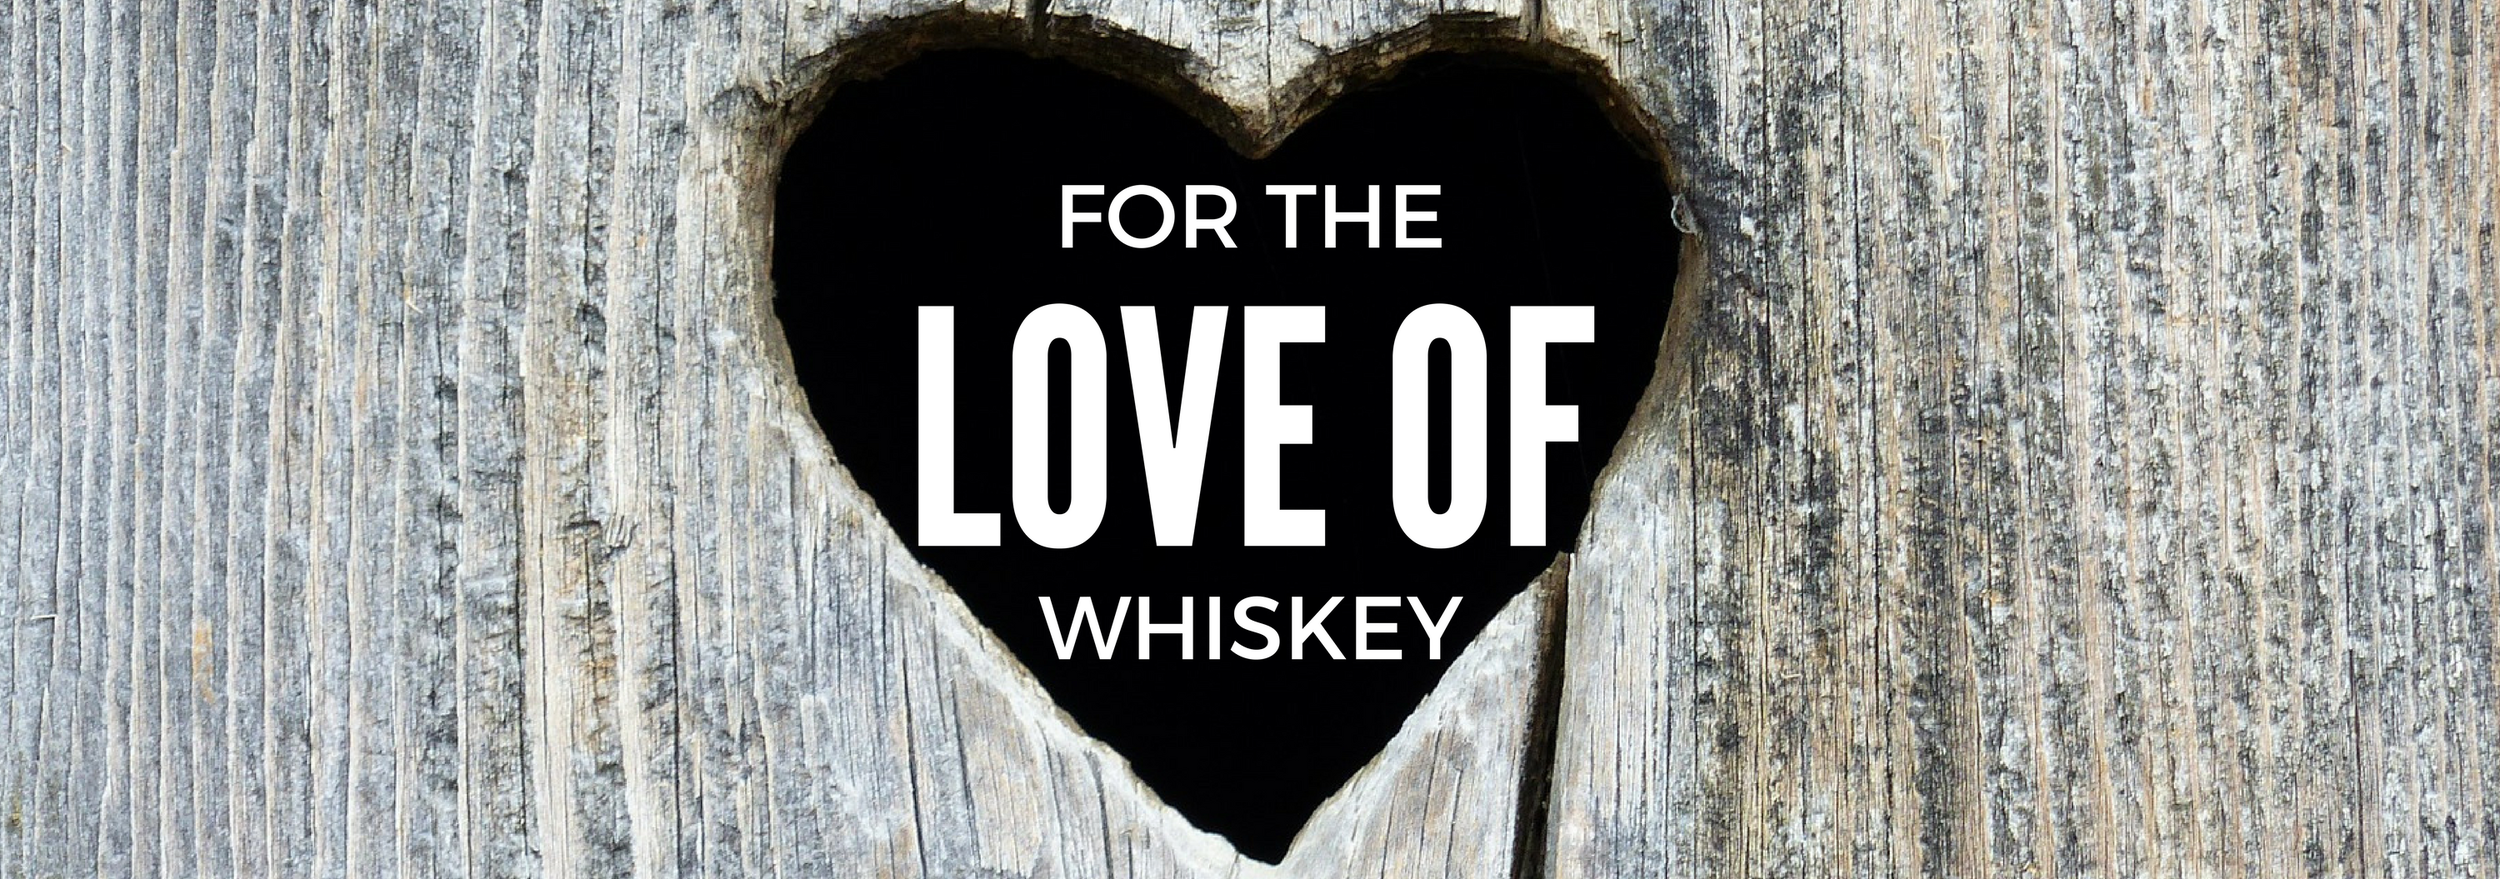 for-the-love-of-whiskey.png